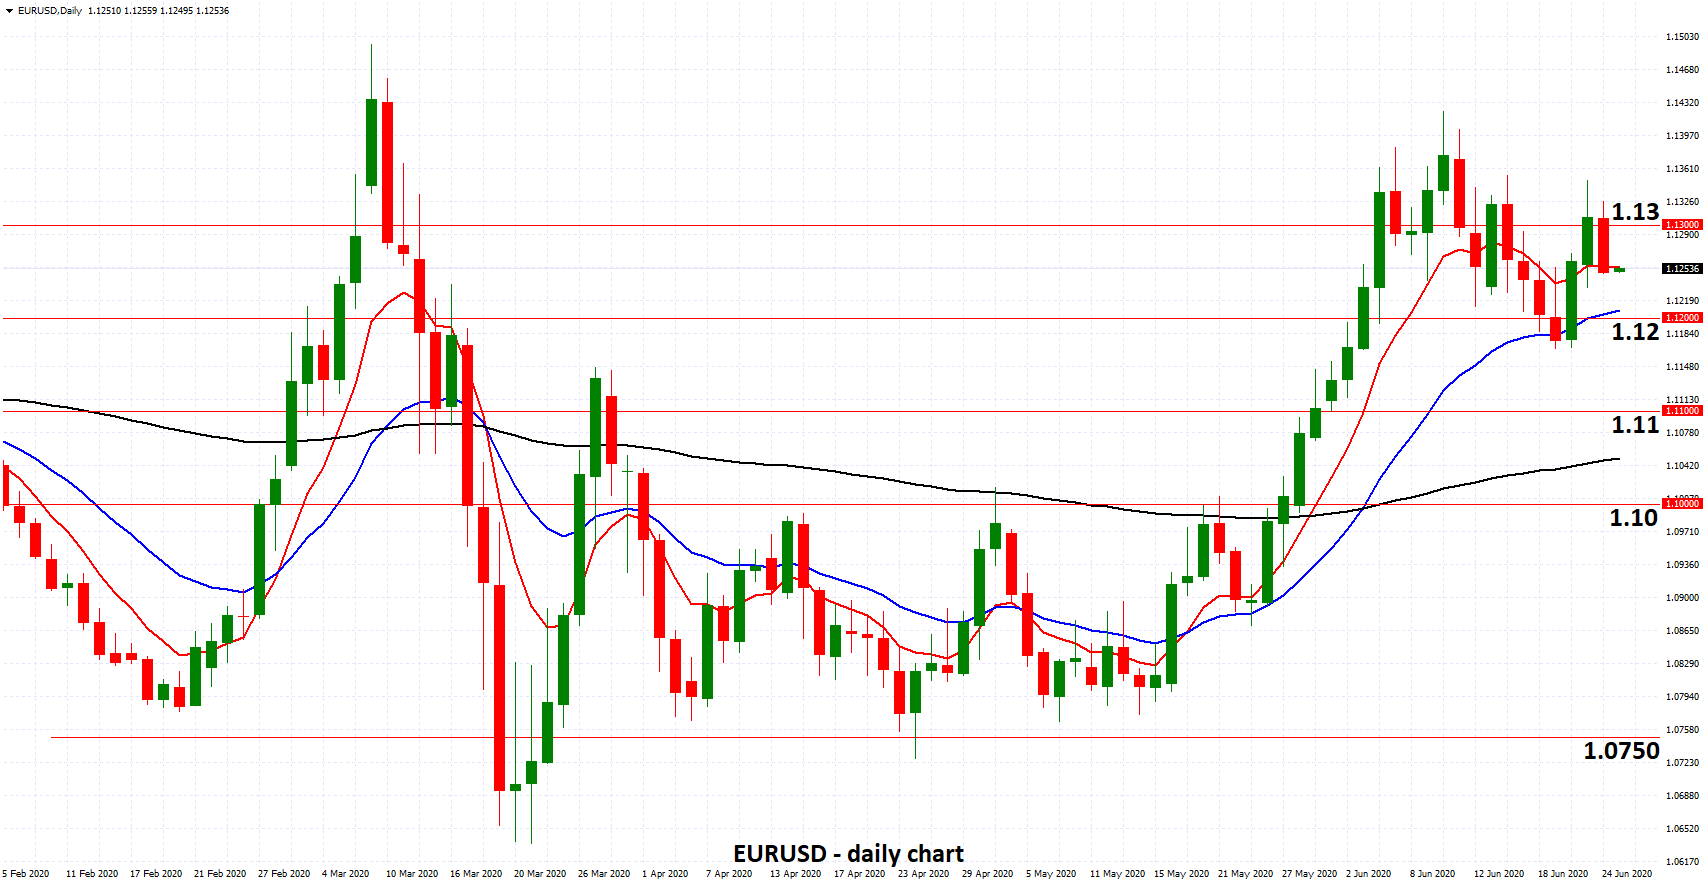 EURUSD - Eases Under 1.13 as ECB Loans Money at Negative Rates